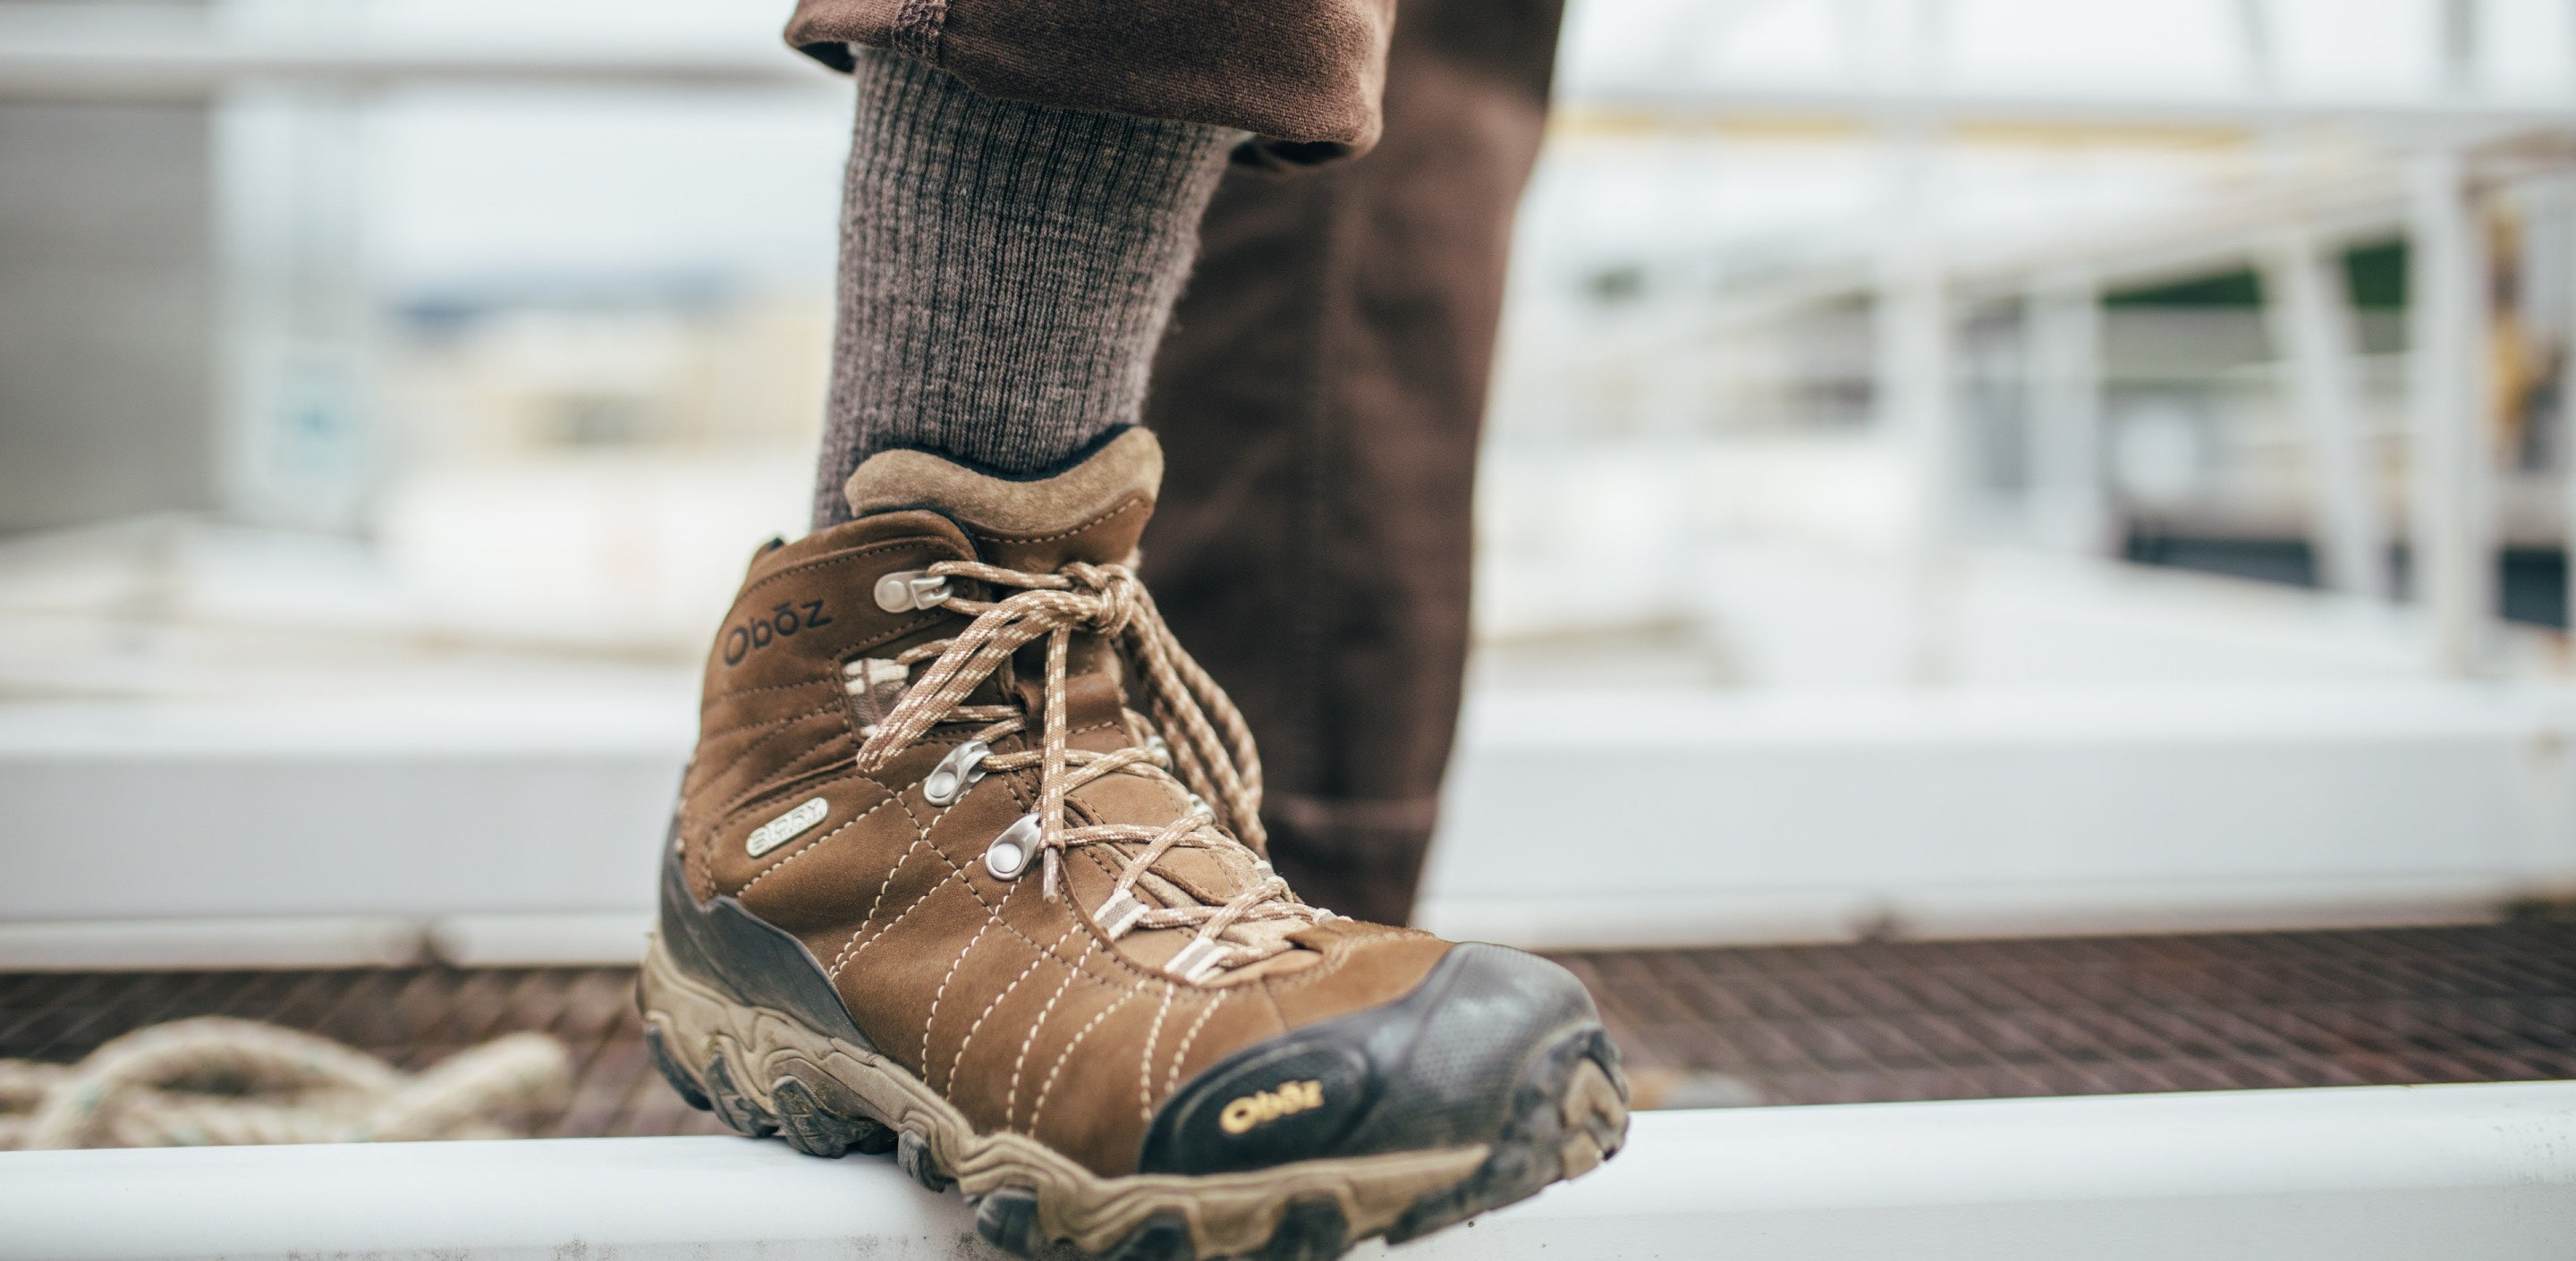 Foot wearing darn tough socks for work in brown work boots